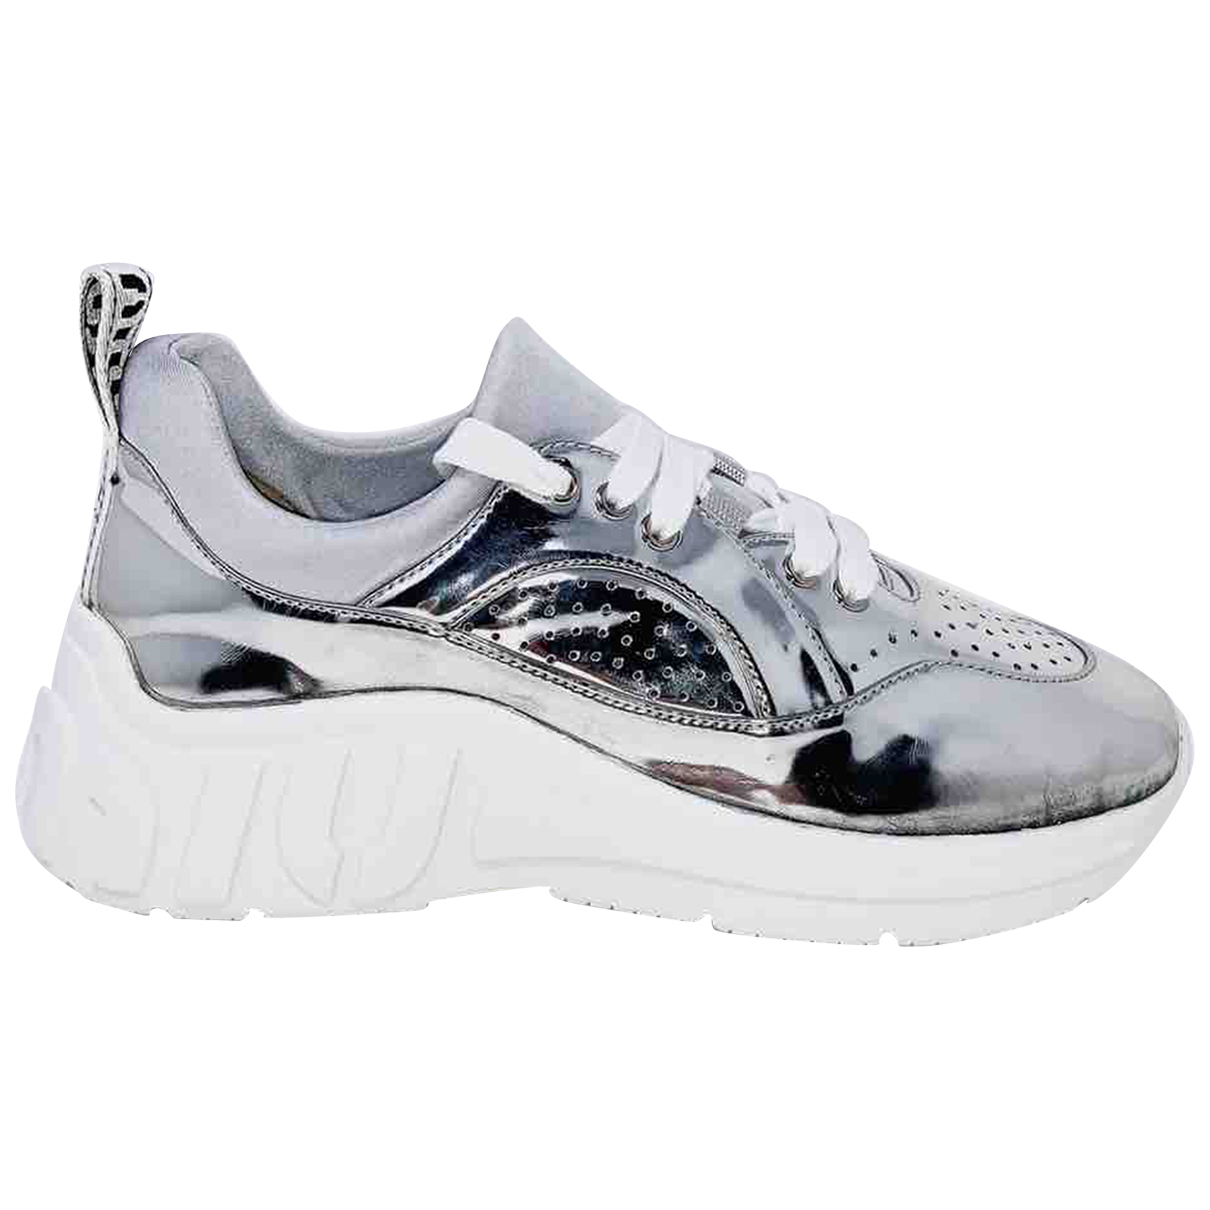 Miu Miu N Silver Leather Trainers for Women 39.5 IT